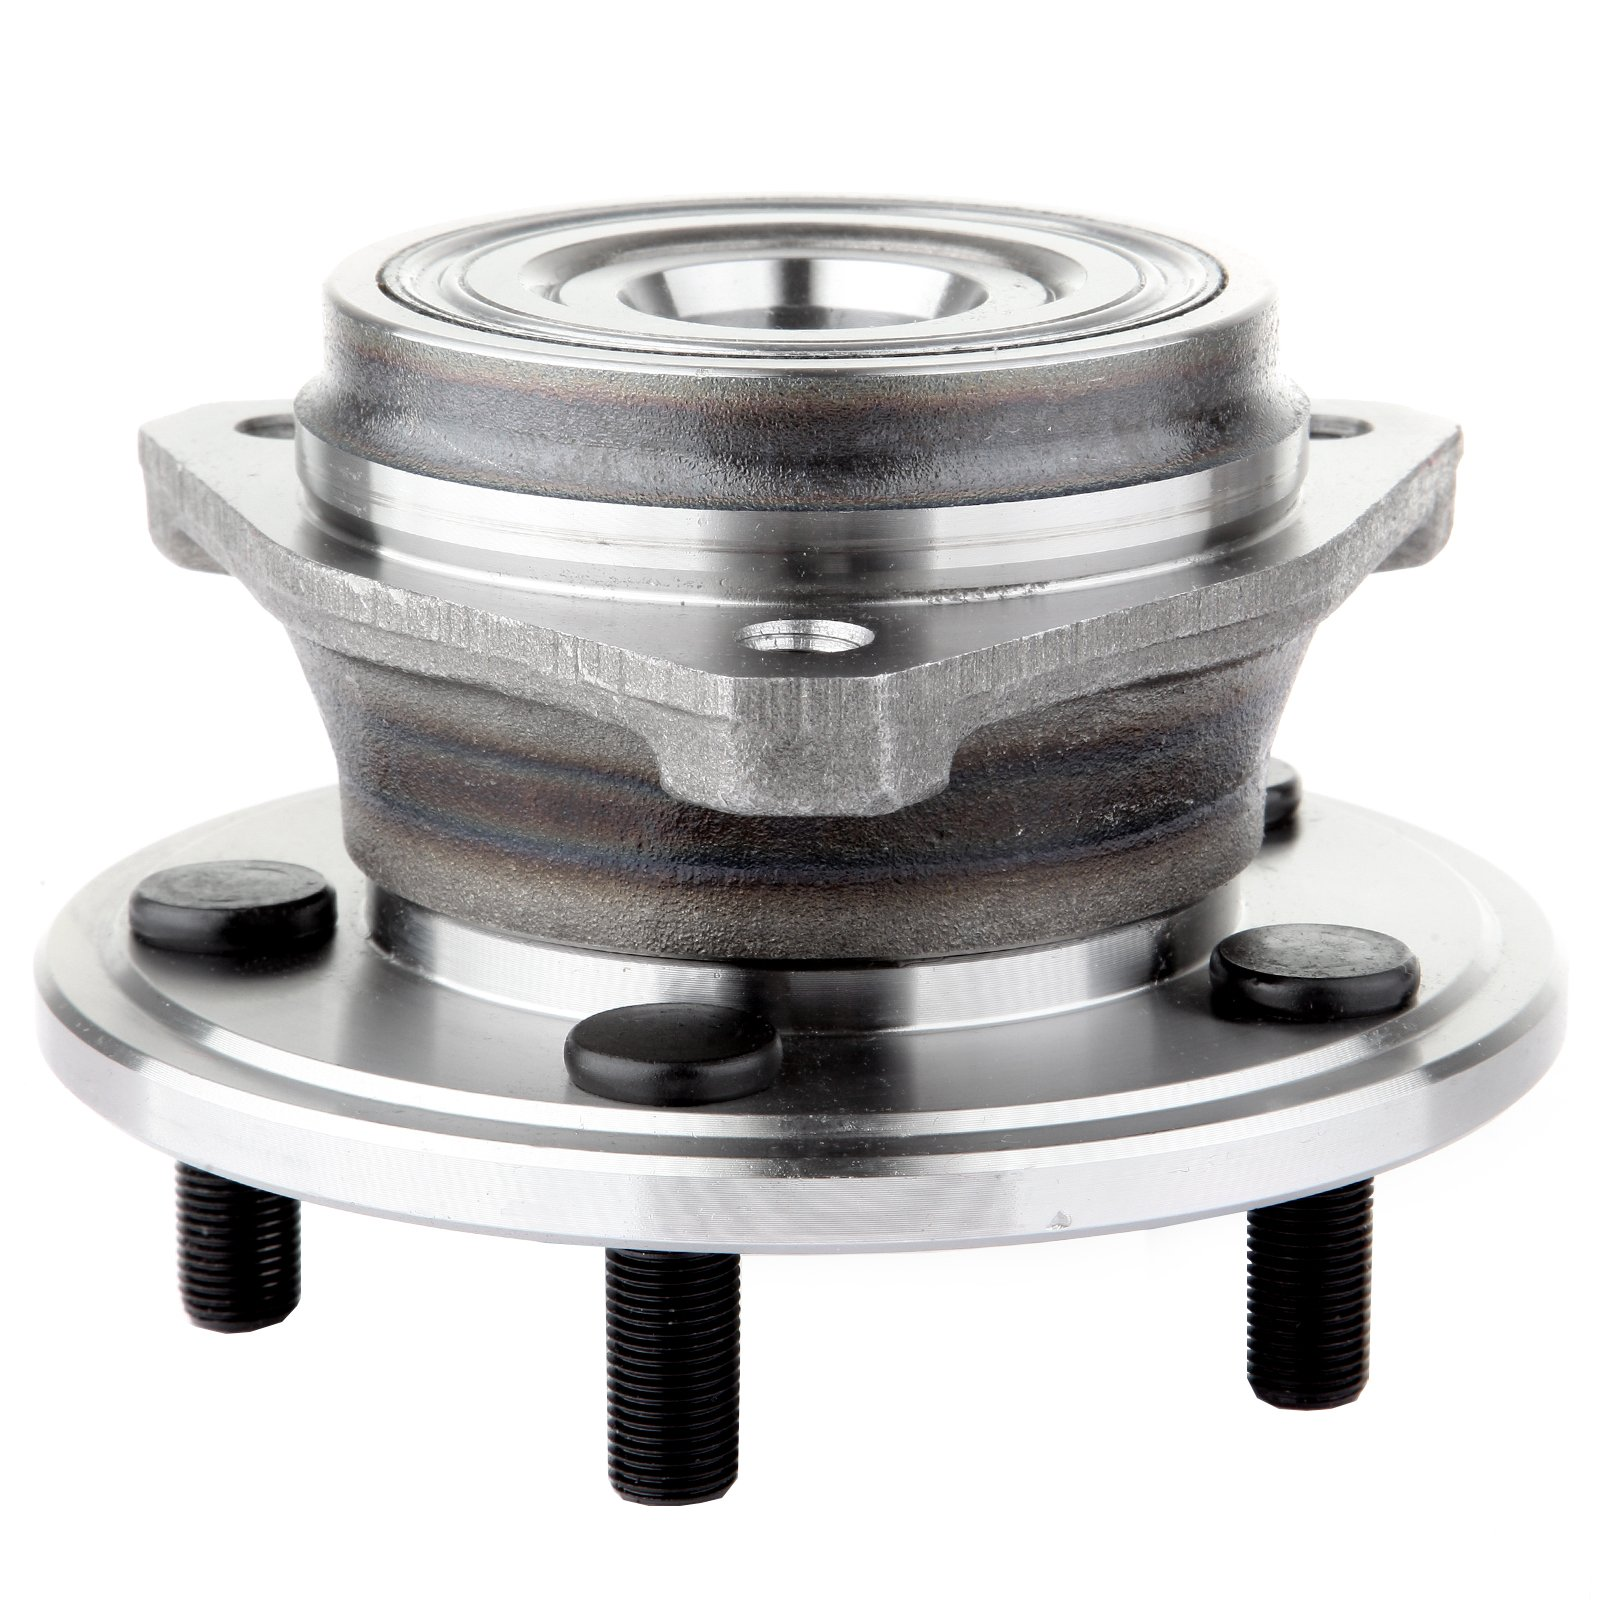 ECCPP Front Wheel Bearing Hub Assembly for Jeep Wrangler Grand Cherokee Pickup Truck 5 Lug